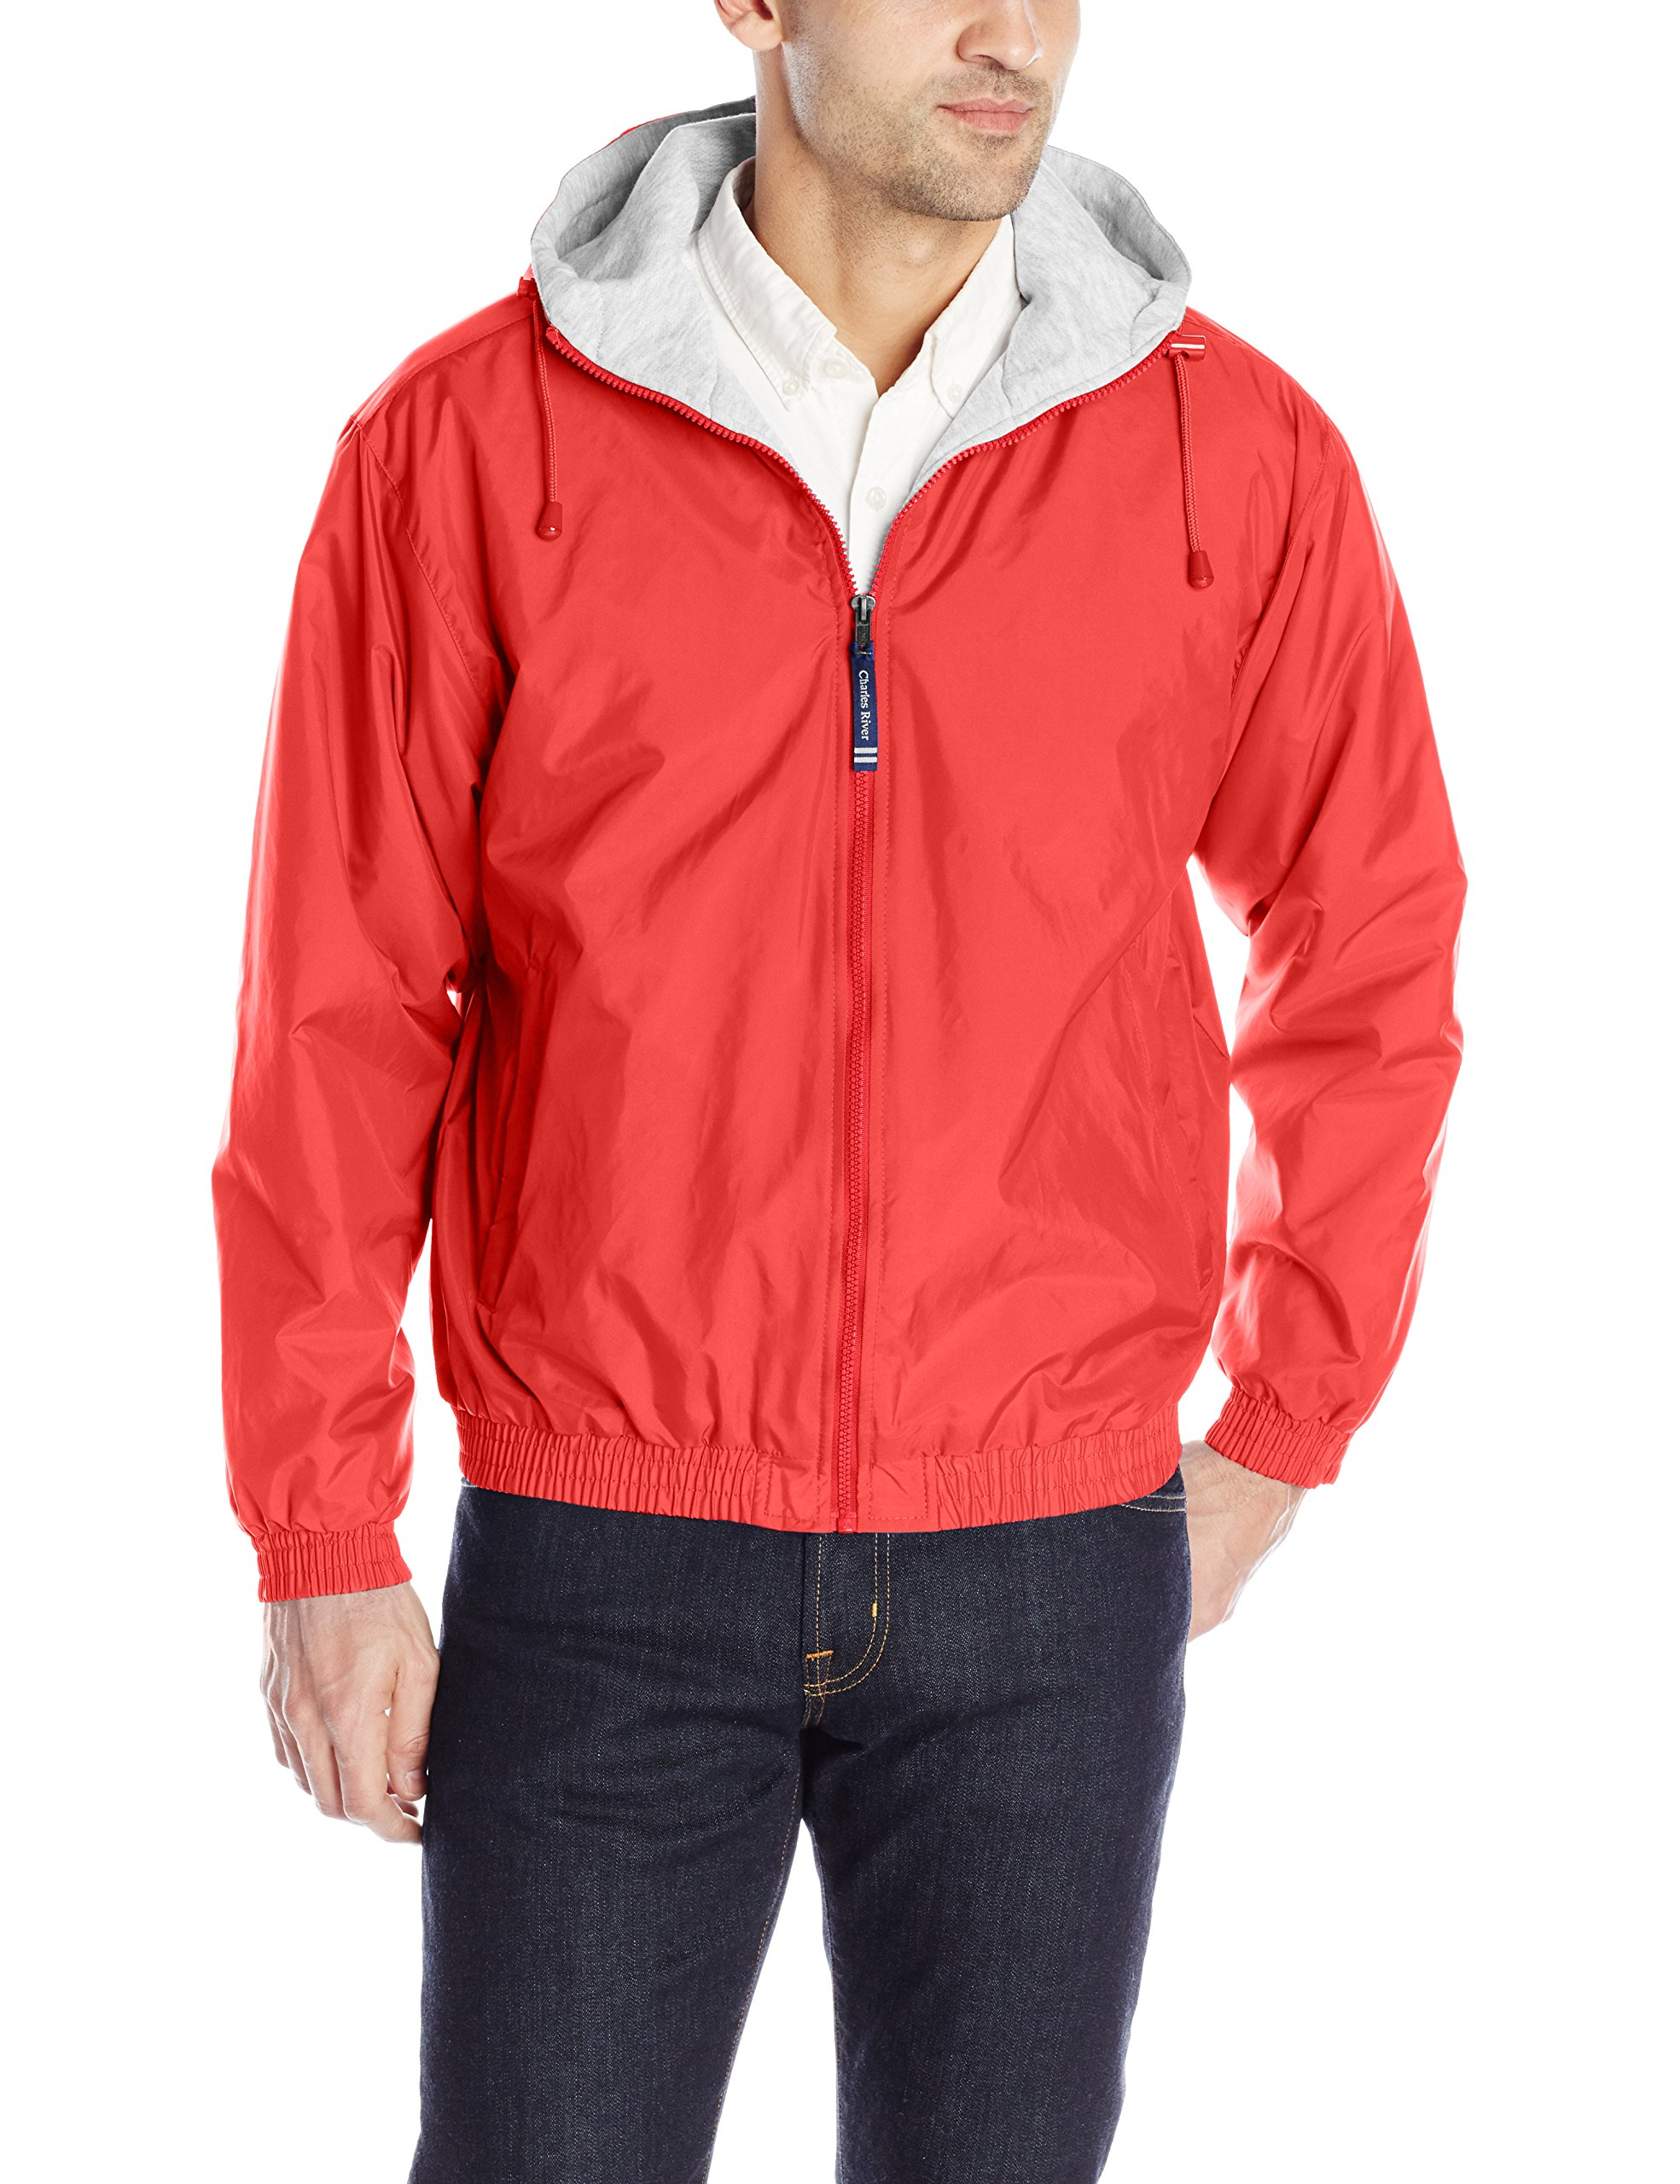 Charles River Apparel Men's Performer Jacket, Red, XXX-Large